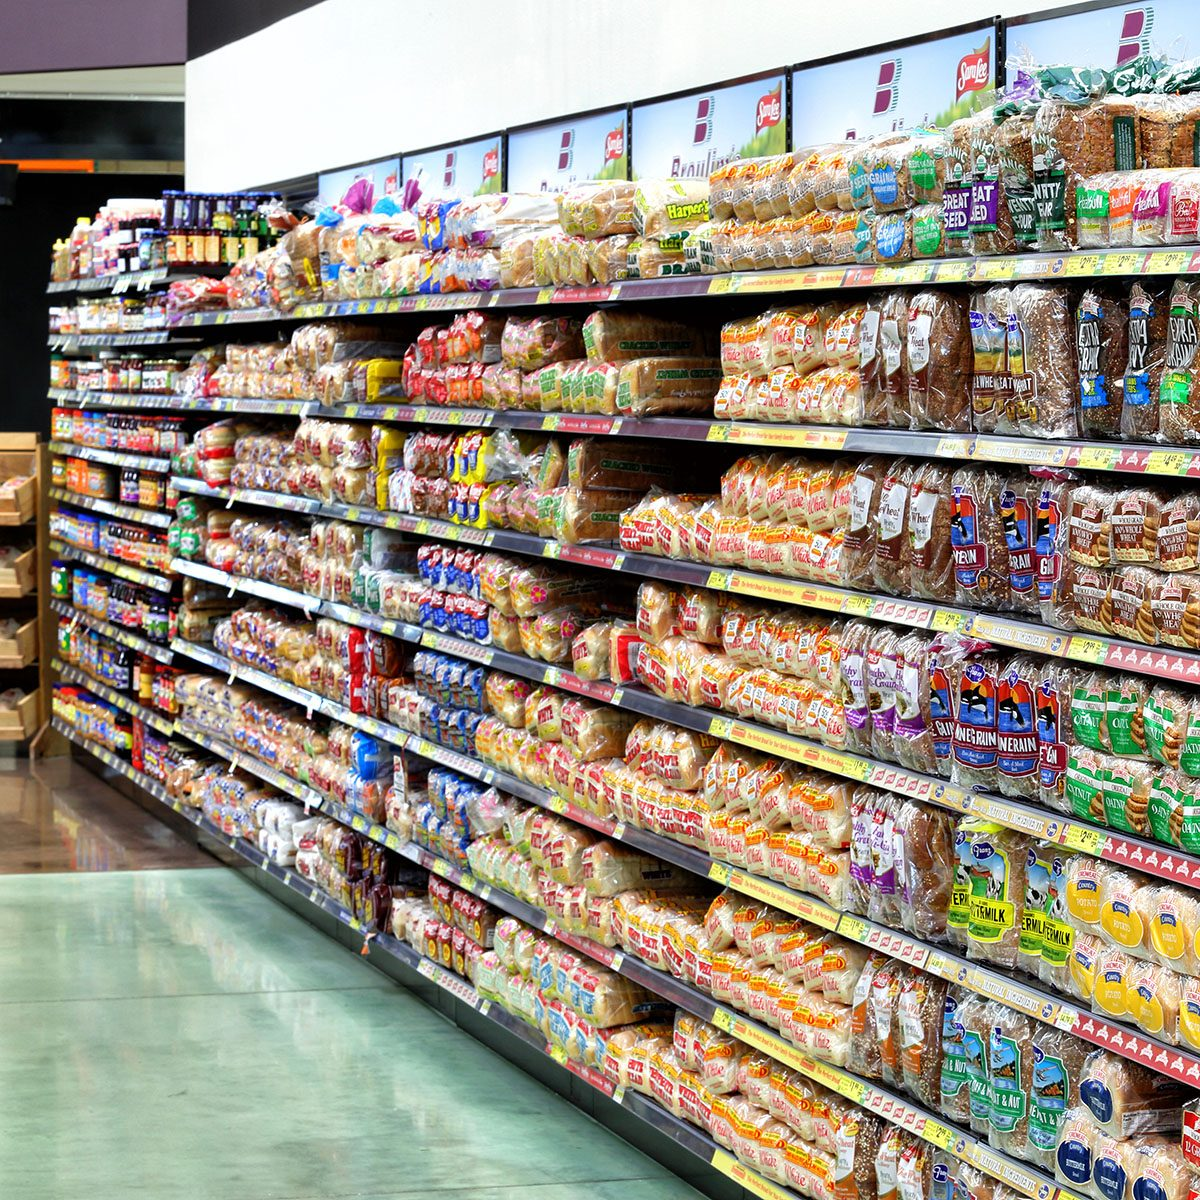 The interior of a modern grocery store showcasing the bread aisle with a variety of prepackaged breads available.